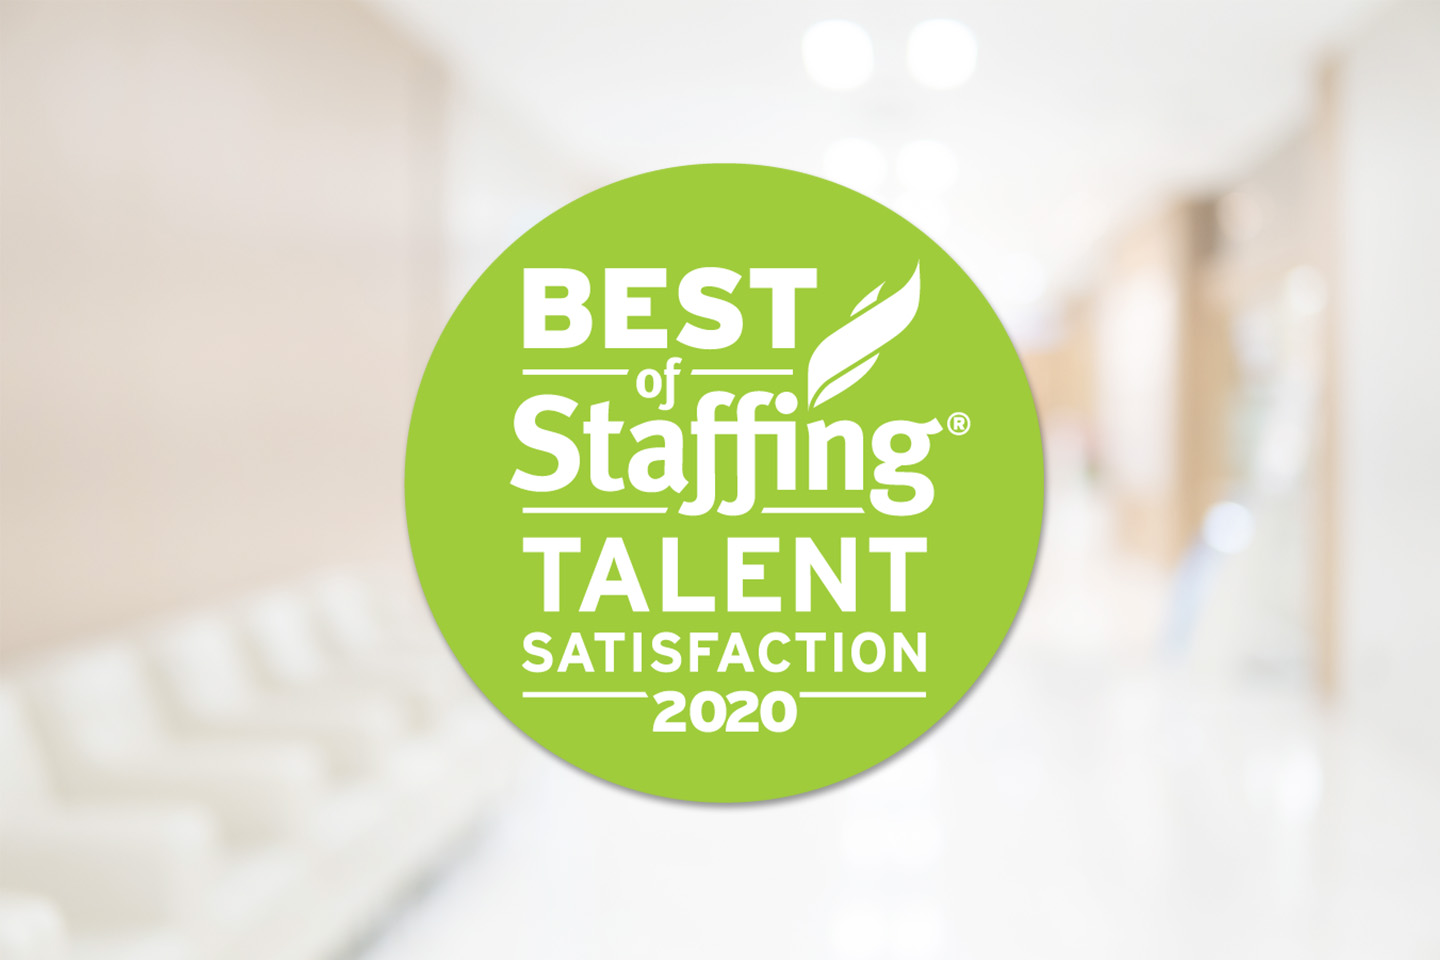 Hero Nabs Best of Staffing Talent Award from Clearly Rated